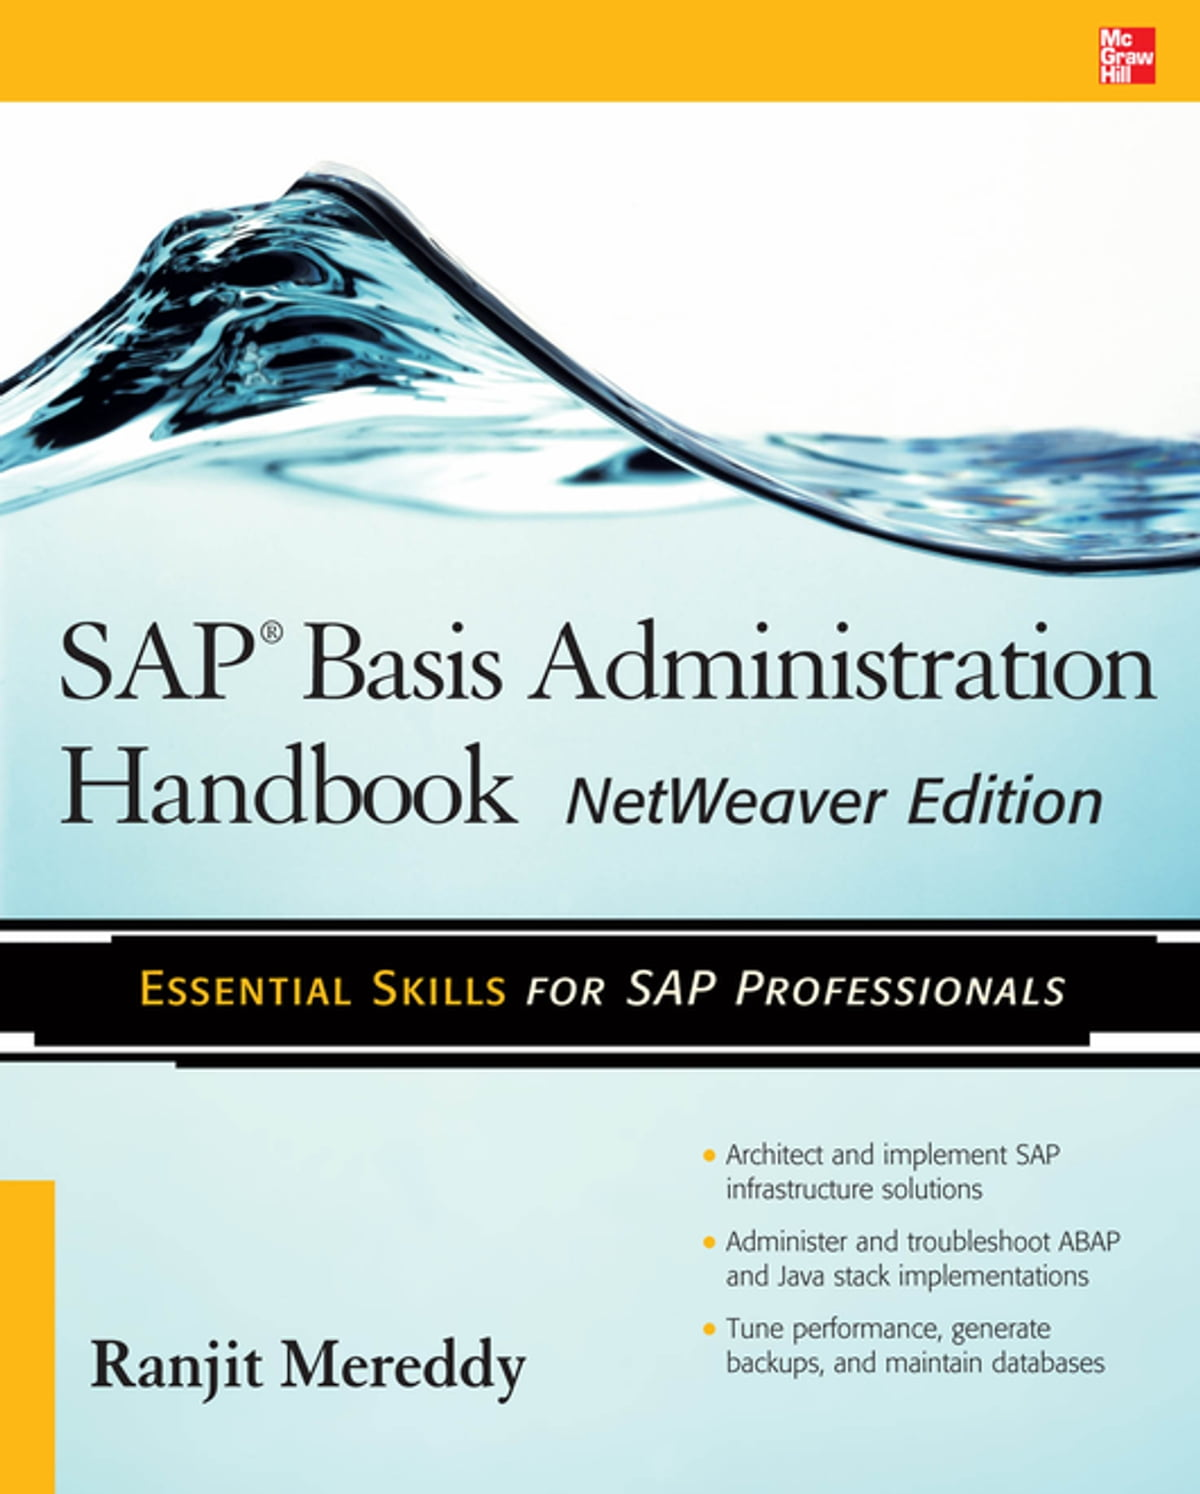 SAP Basis Administration Handbook, NetWeaver Edition eBook by Ranjit  Mereddy - 9780071663496 | Rakuten Kobo